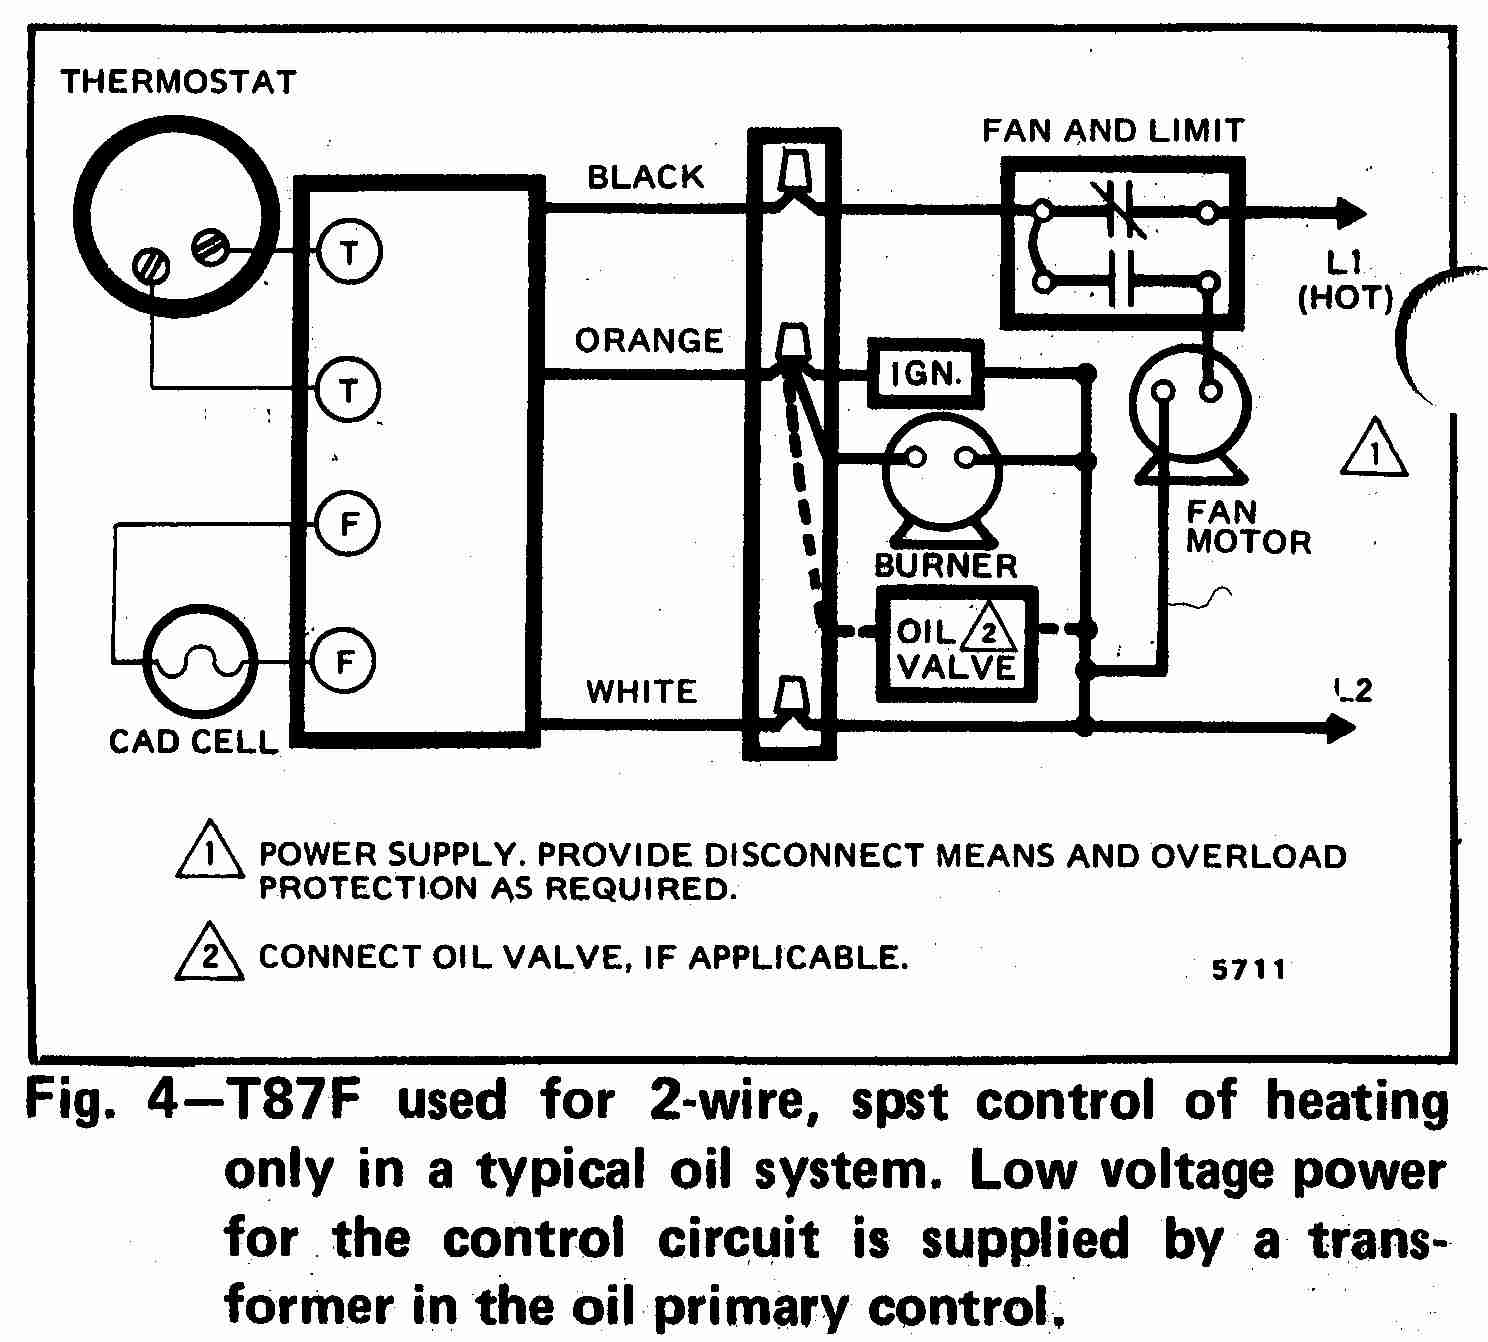 TT_T87F_0002_2W_DJF honeywell relay wiring diagram honeywell chronotherm iii wiring honeywell ra89a1074 wiring diagram at n-0.co